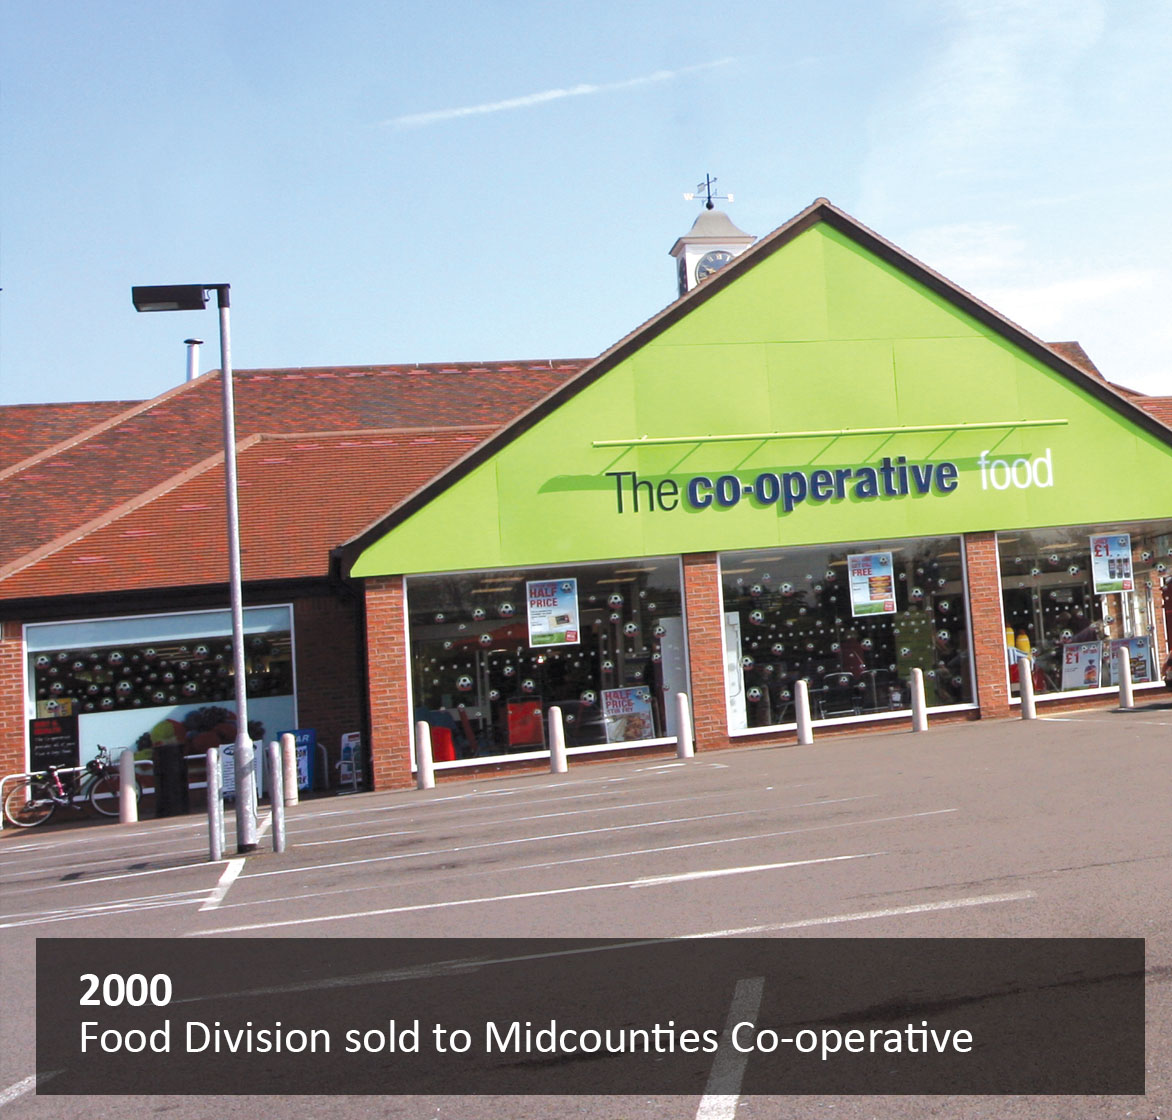 Food Division sold to Midcounties Co-operative